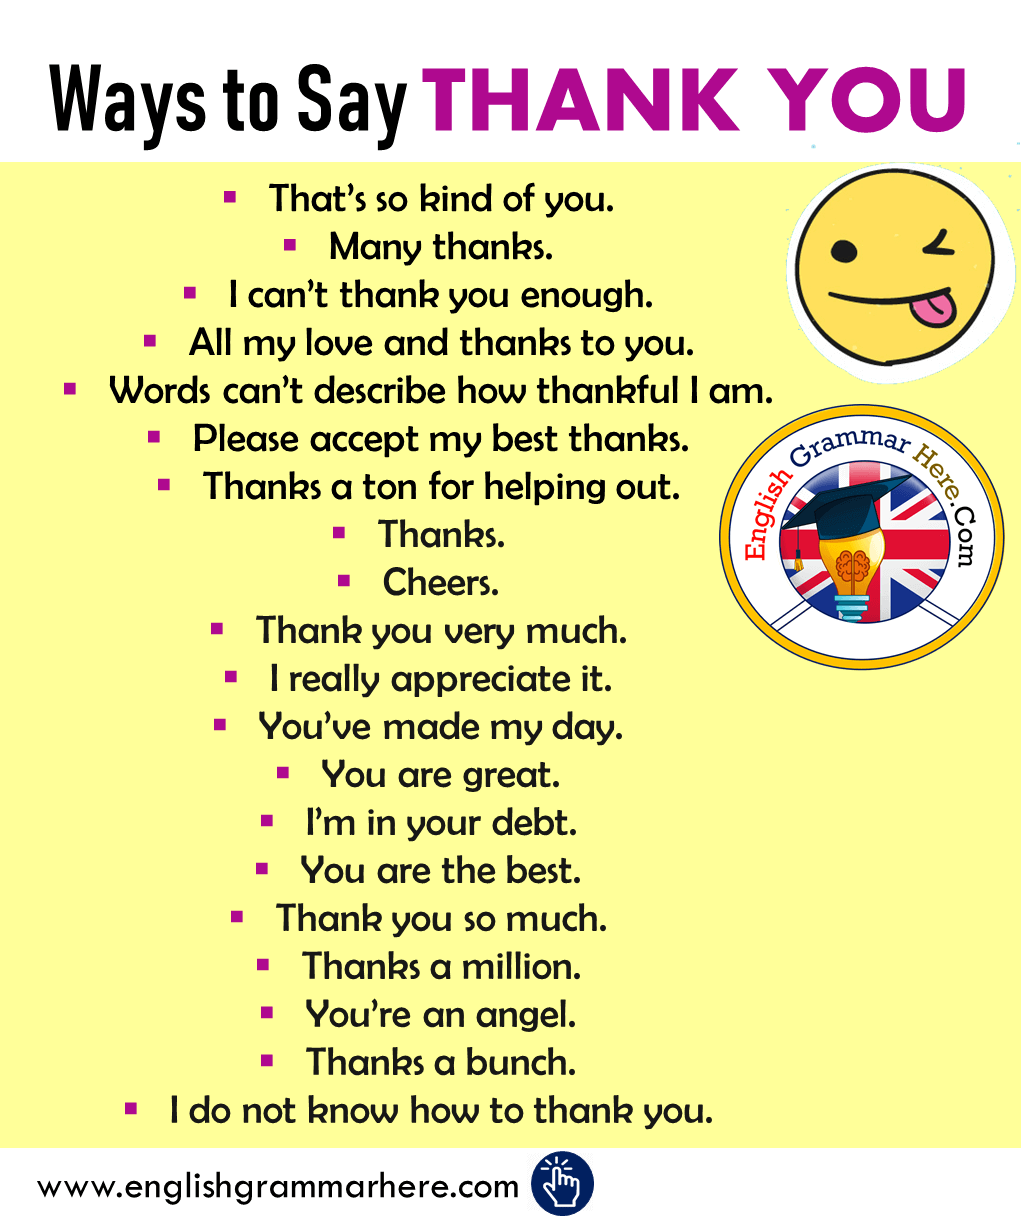 Different Ways to Say THANK YOU in English